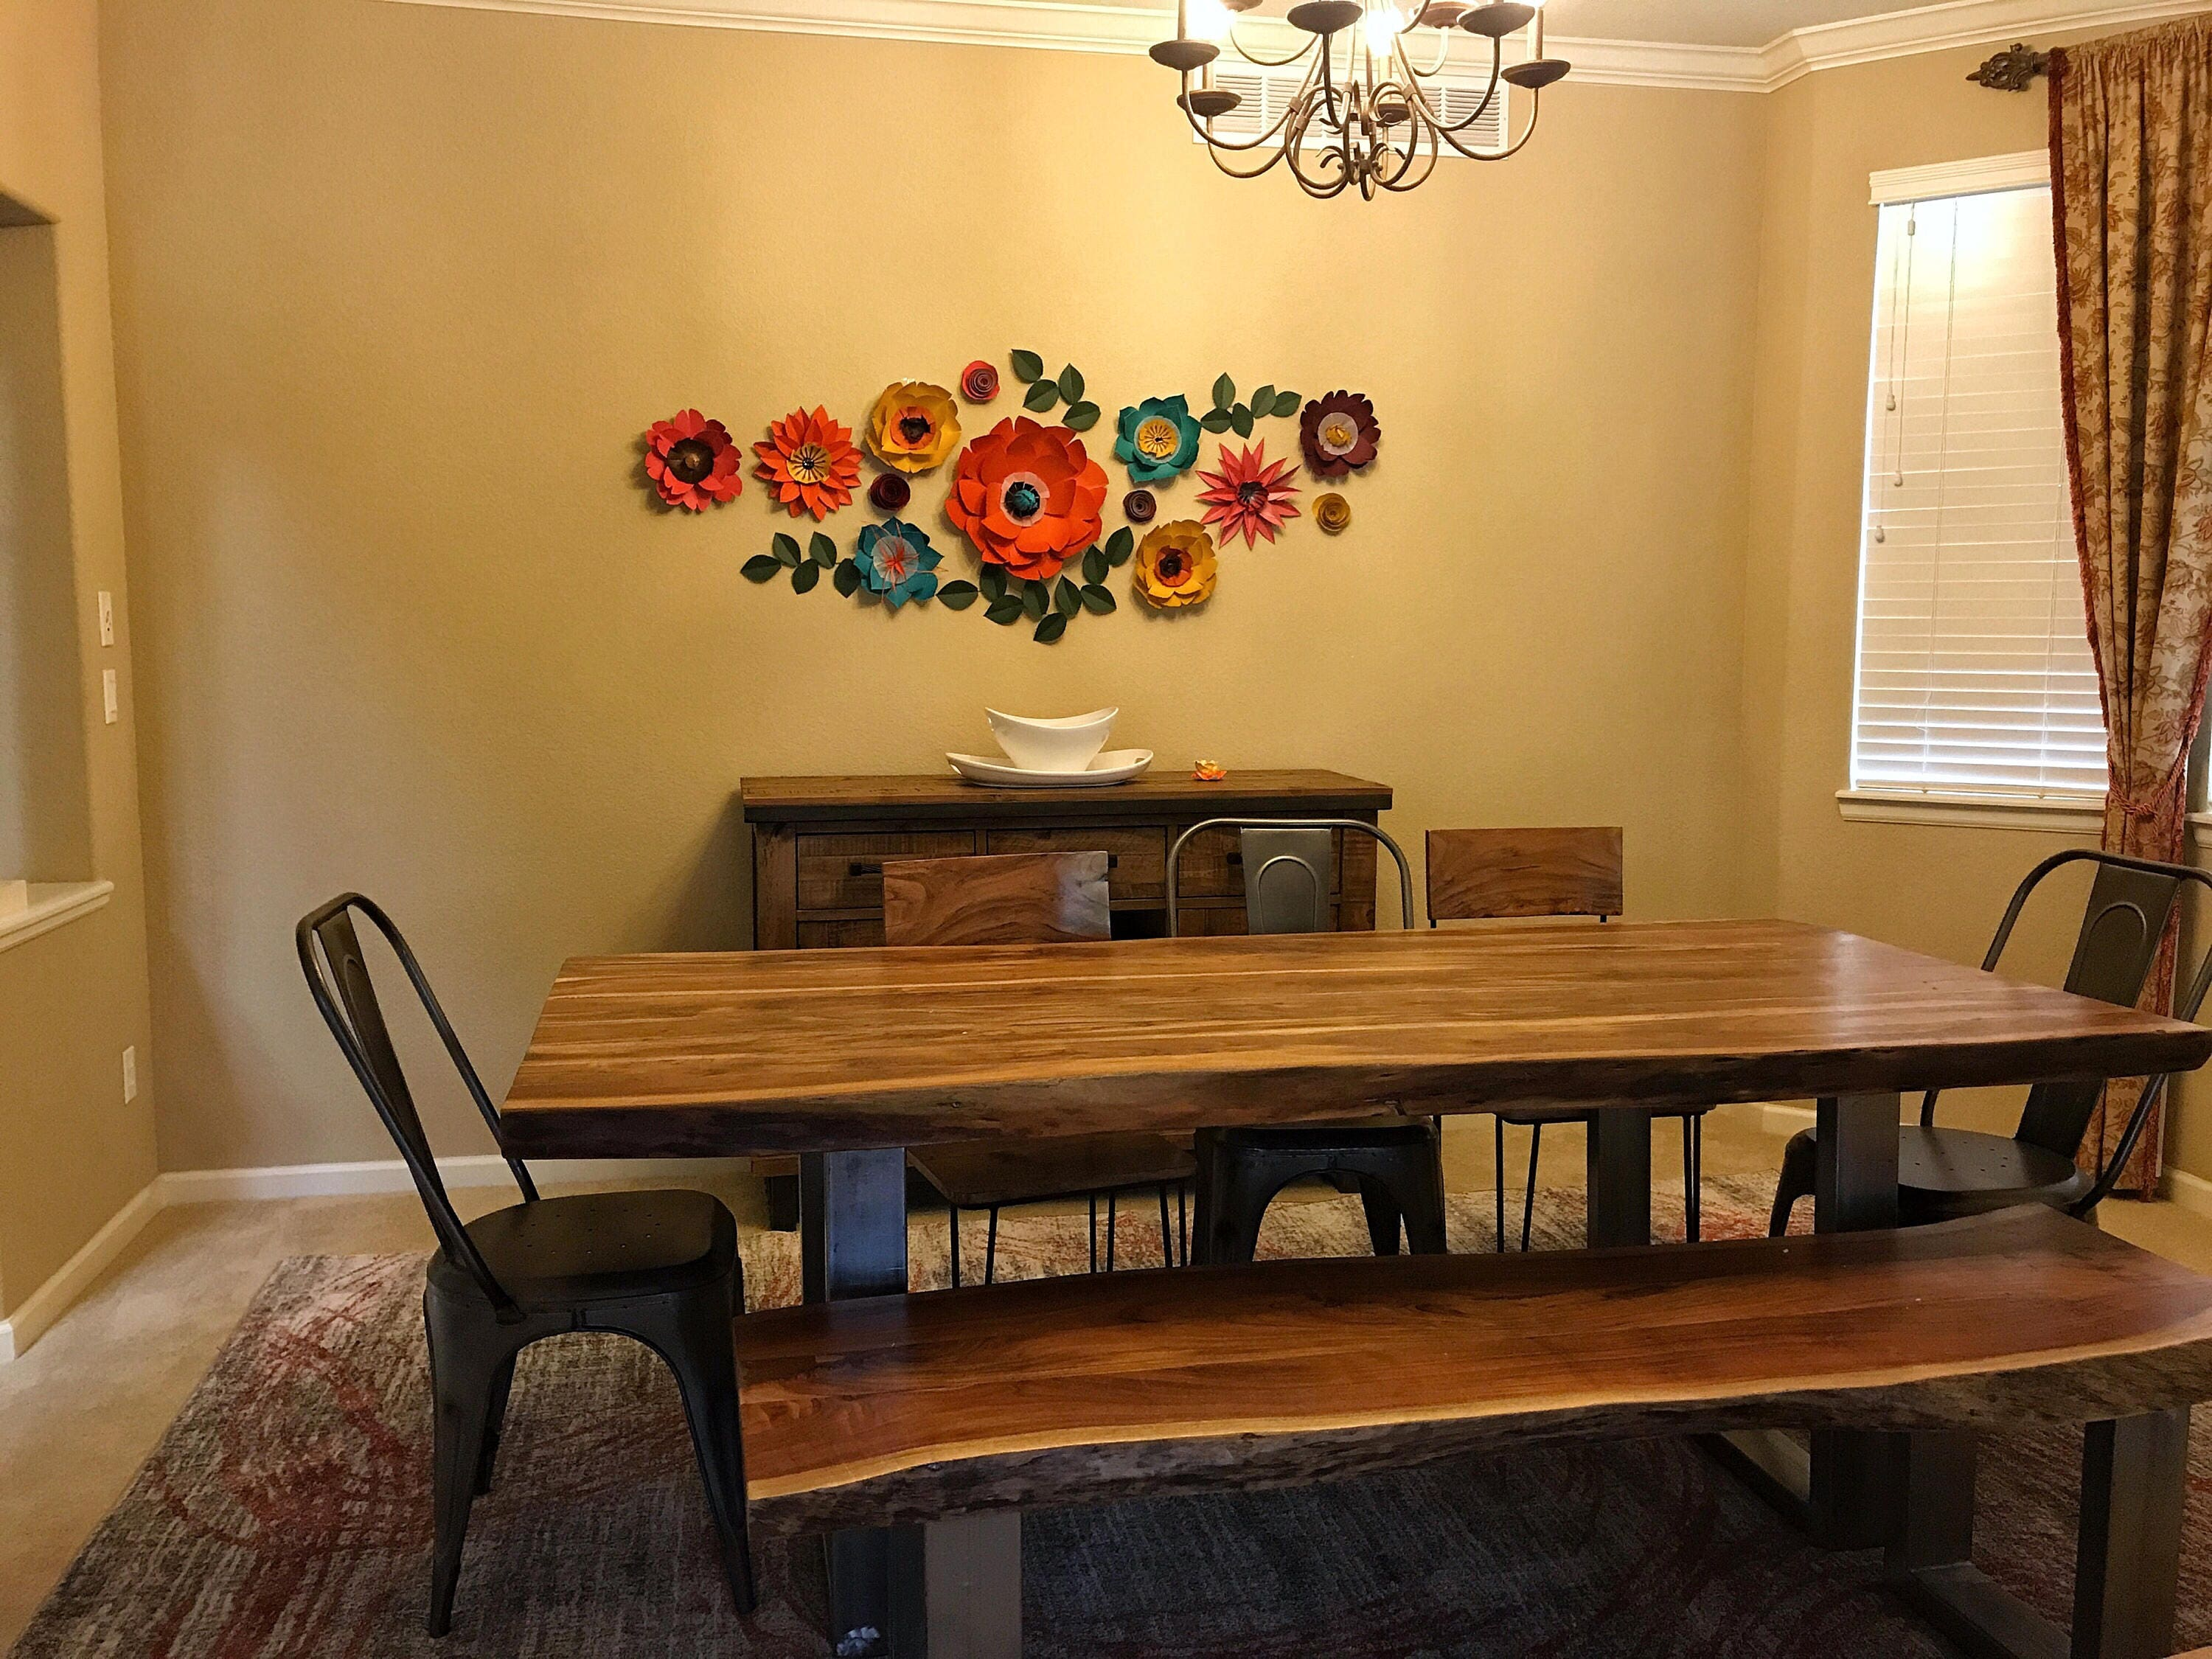 Paper flowers dining room wall decor, jewel-toned paper flowers ...